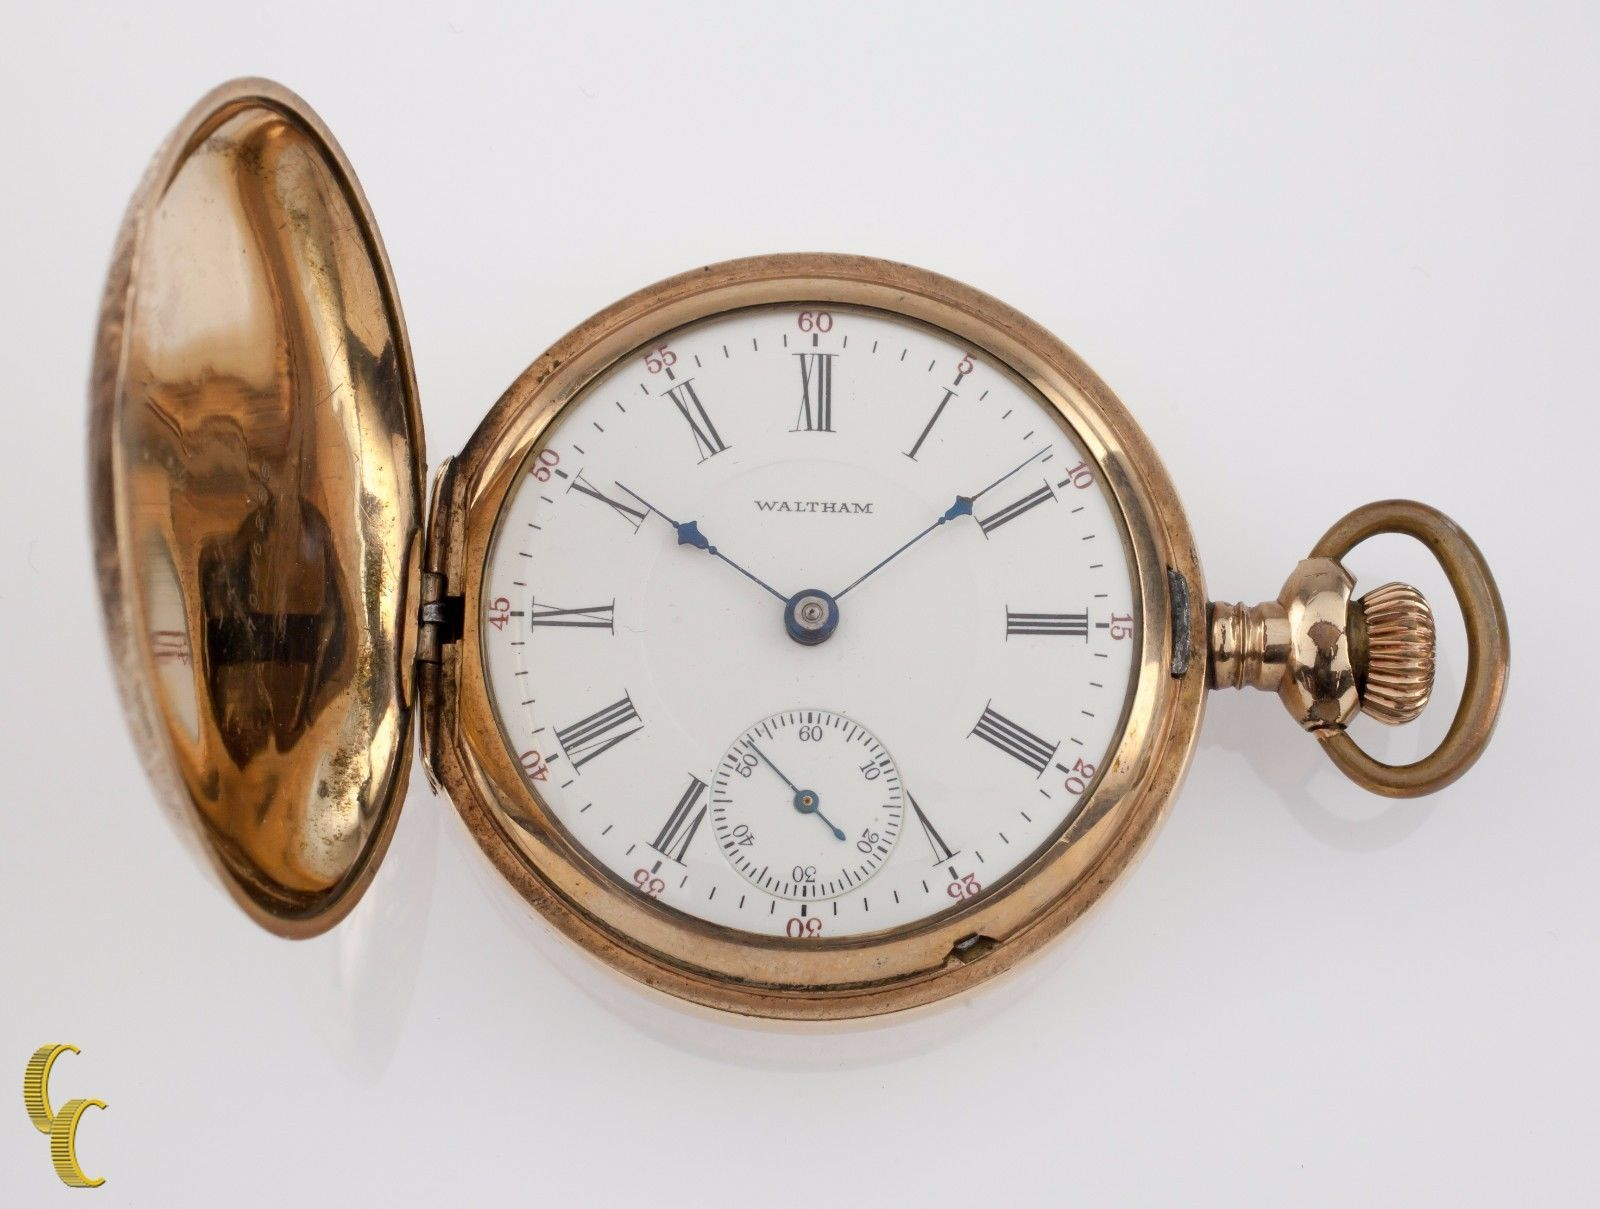 Antique Waltham Gold Filled Hunting Cased Lady's Size 6 Pocket Watch Watches, Parts & Accessories